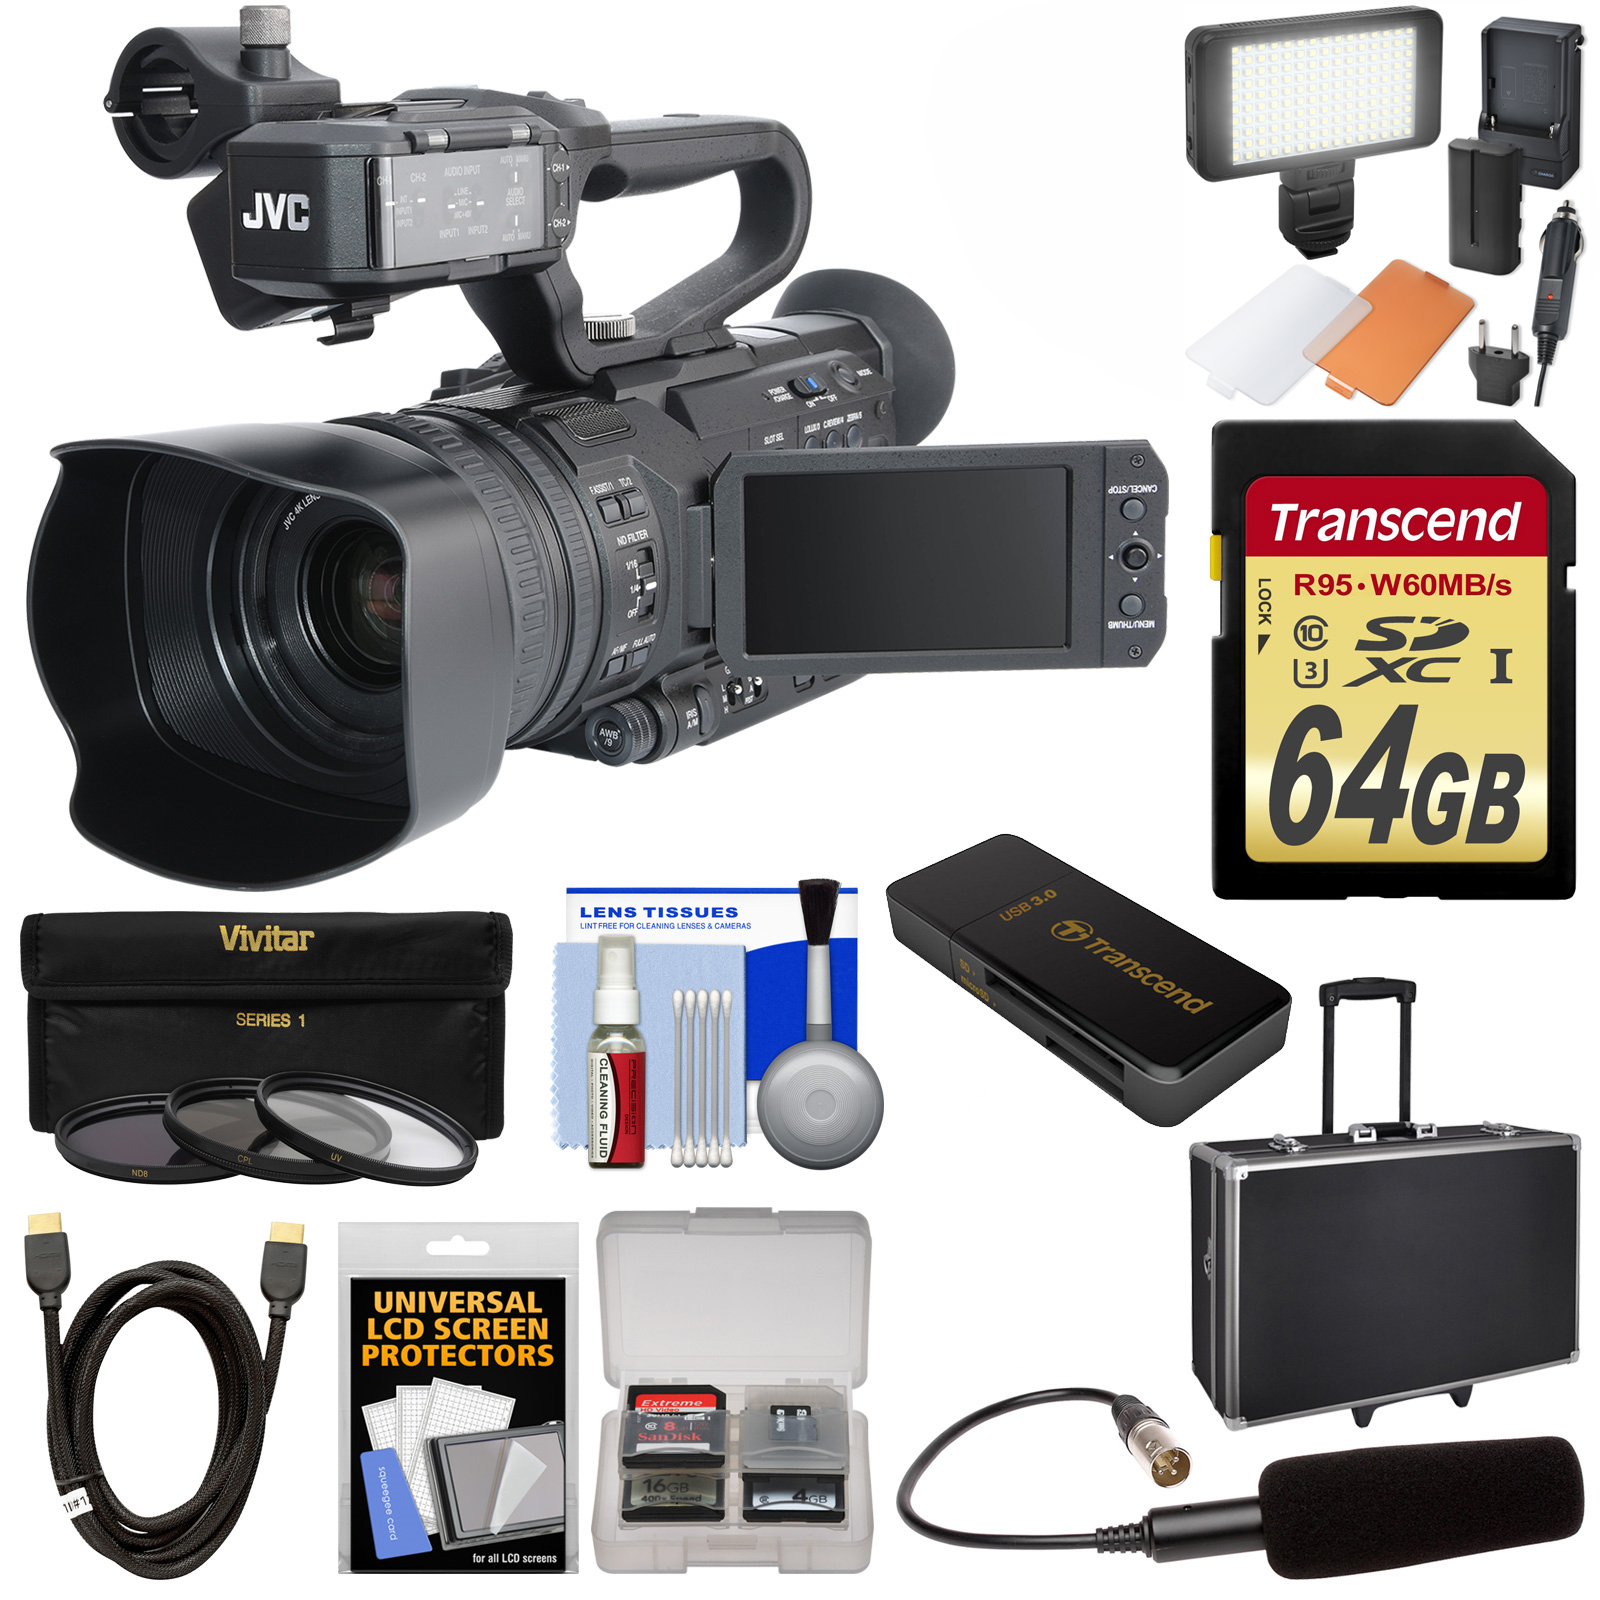 JVC GY-HM200U Ultra 4K HD 4KCAM Professional Camcorder & Top Handle Audio Unit with XLR Microphone + 64GB Card + Hard Case + LED Light Kit